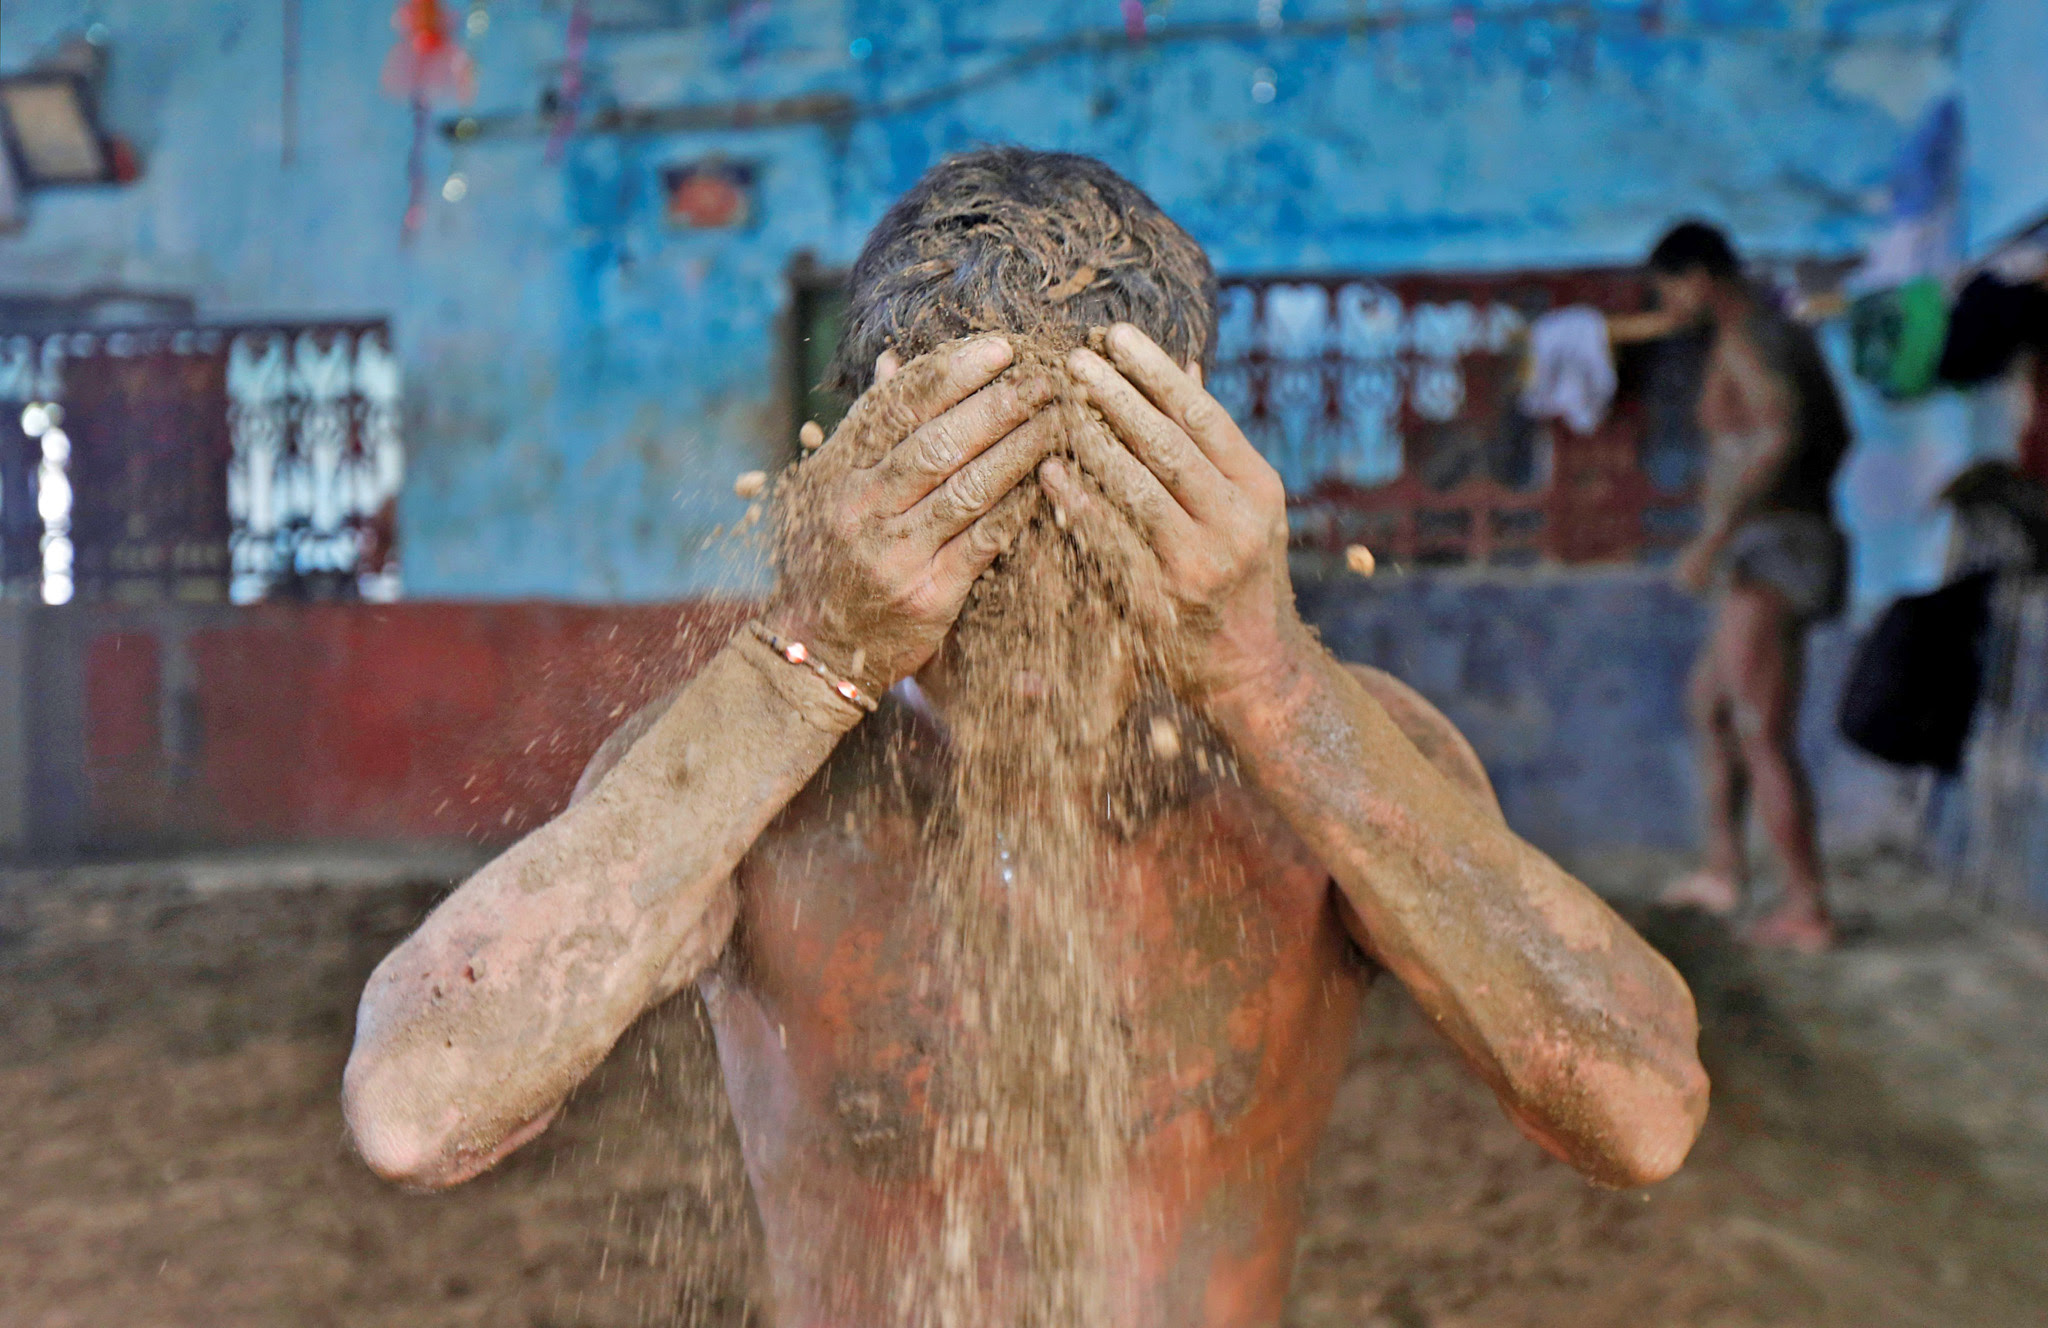 A wrestler applies mud to prevent slipping due to sweat, at a traditional training centre on the banks of the river Ganges ahead of the Bengal mud wrestling championships, in Kolkata, India today